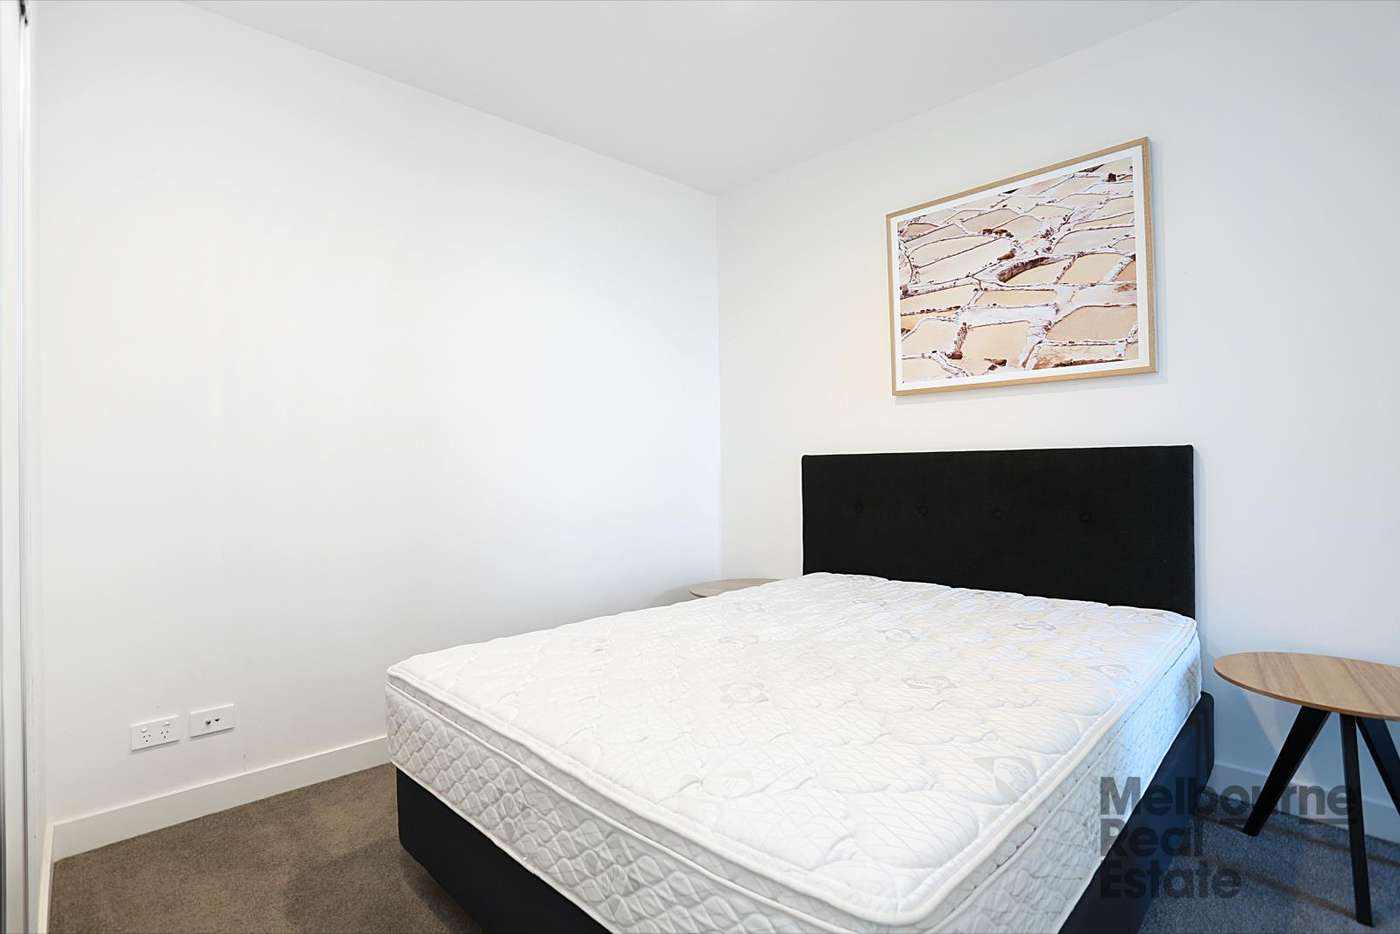 Seventh view of Homely apartment listing, 3905/105 Clarendon Street, Southbank VIC 3006